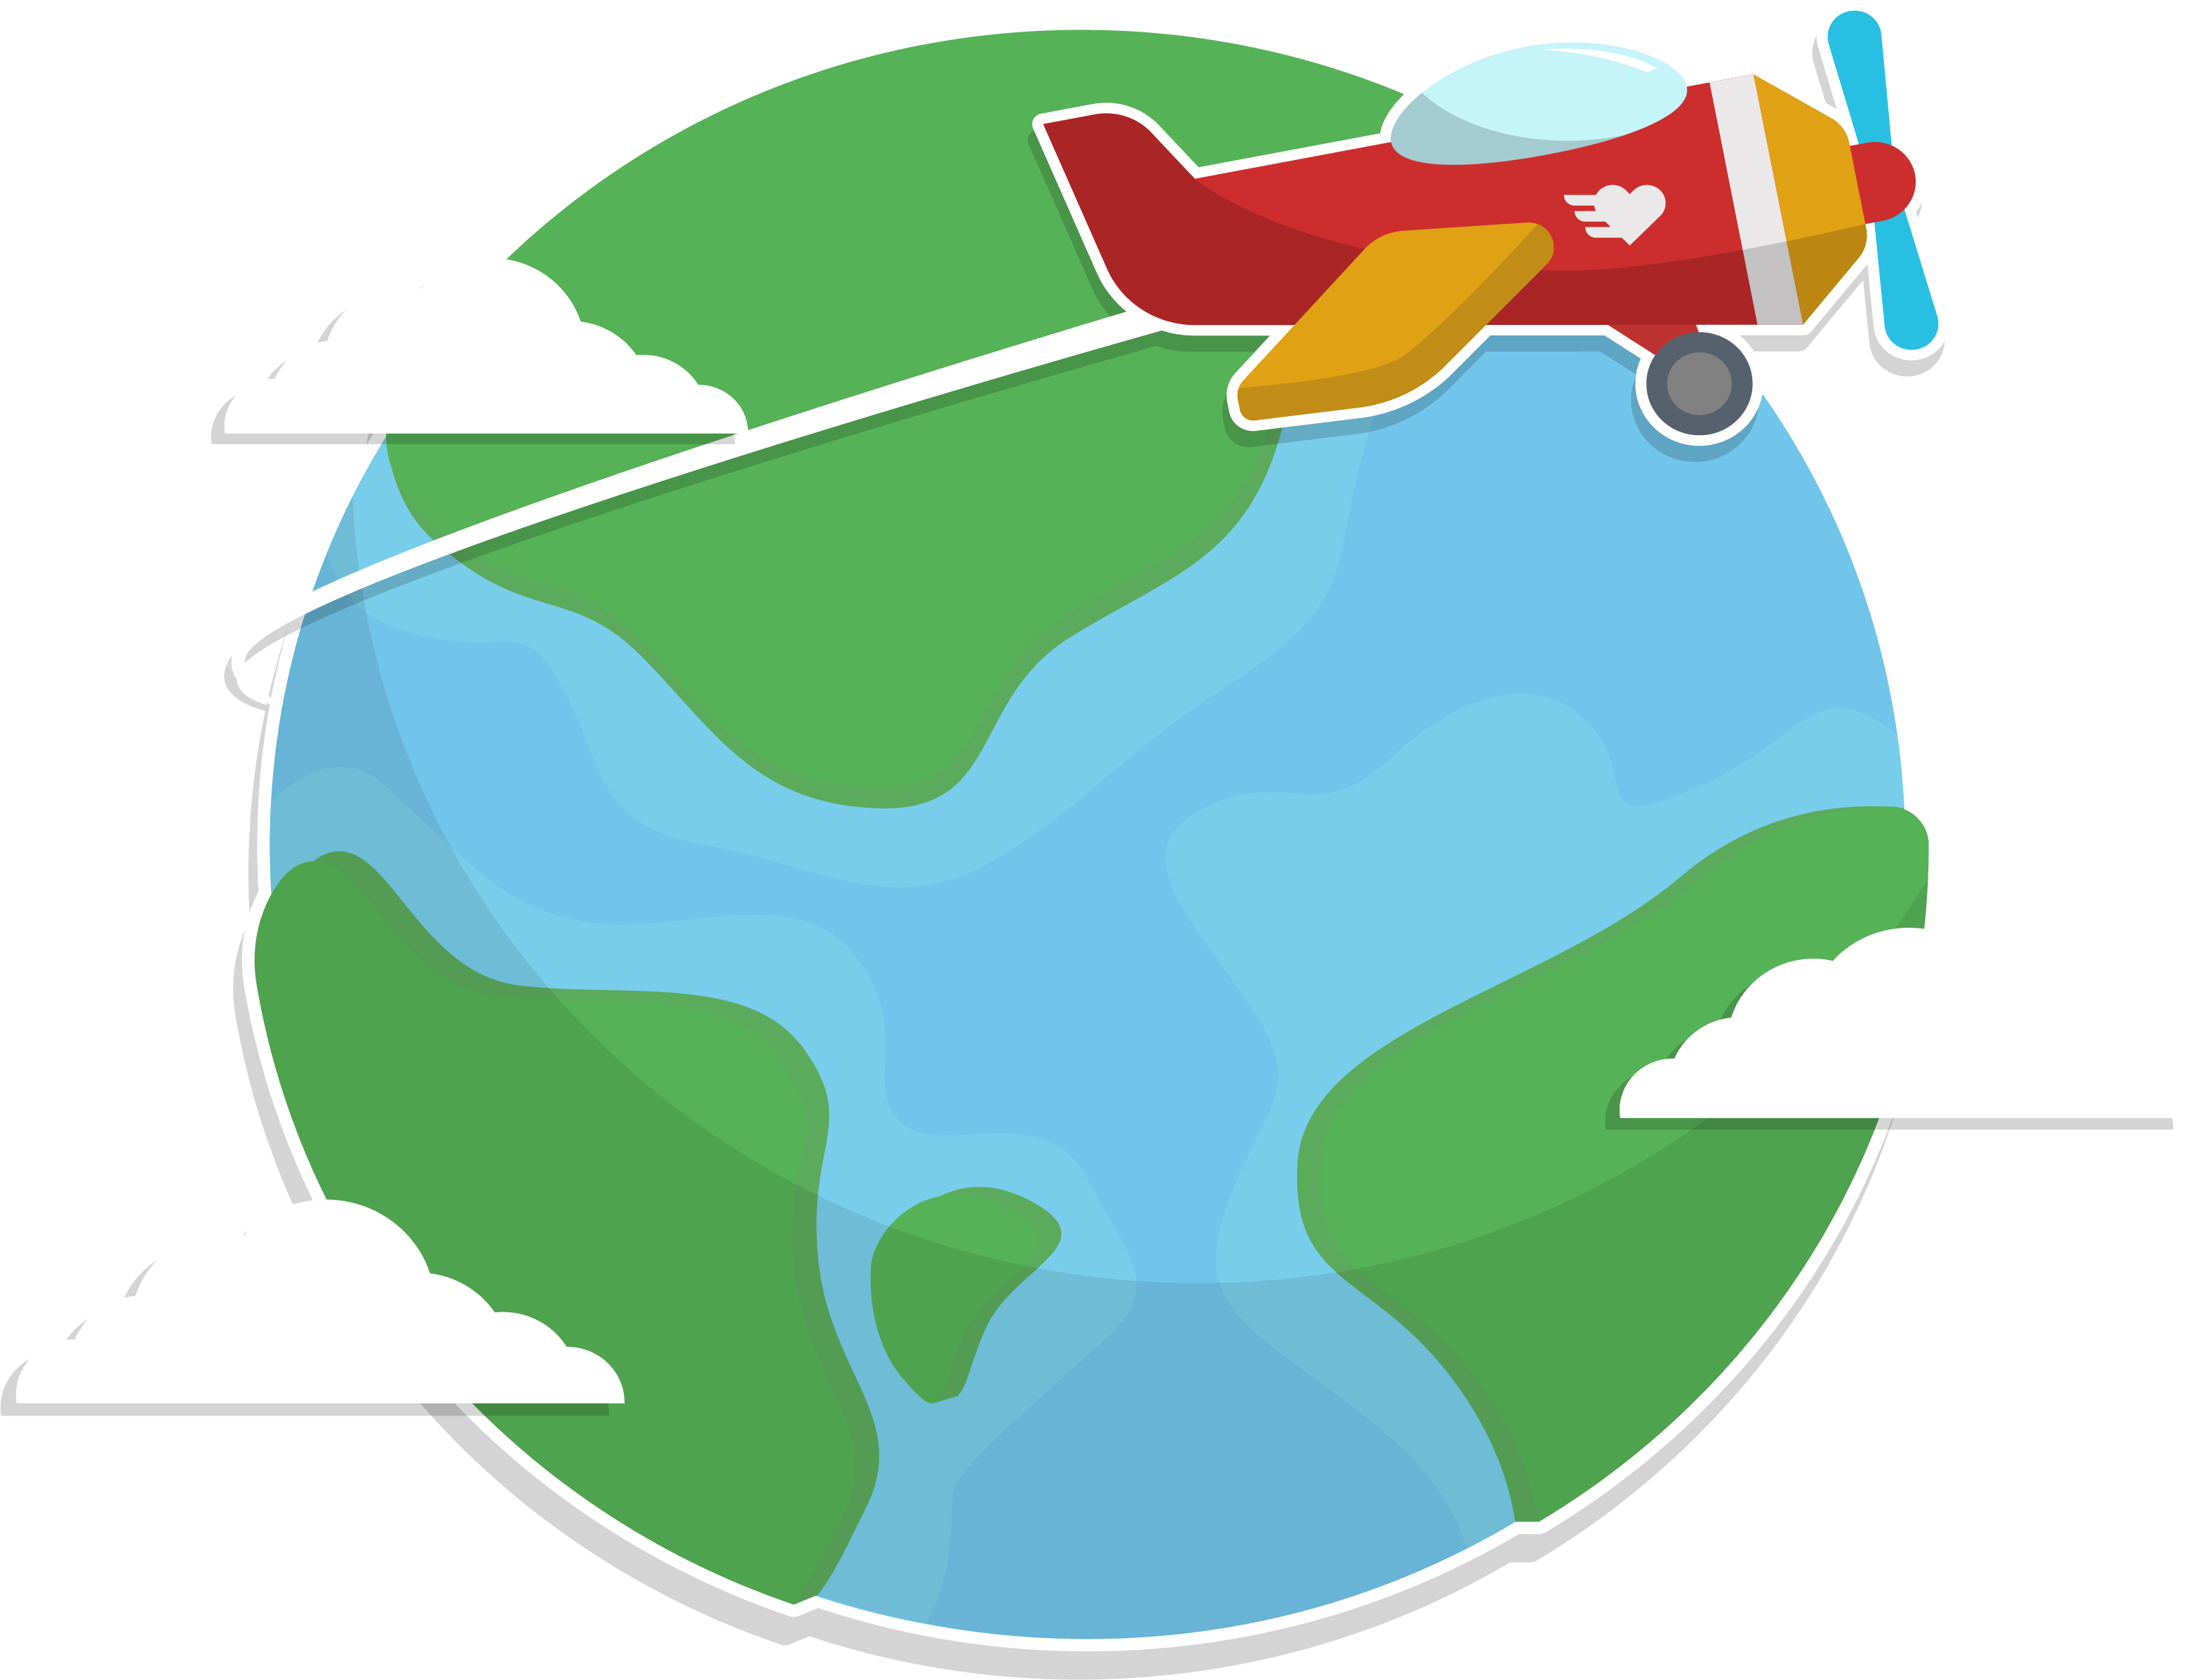 Earth clipart airplane, Earth airplane Transparent FREE for.